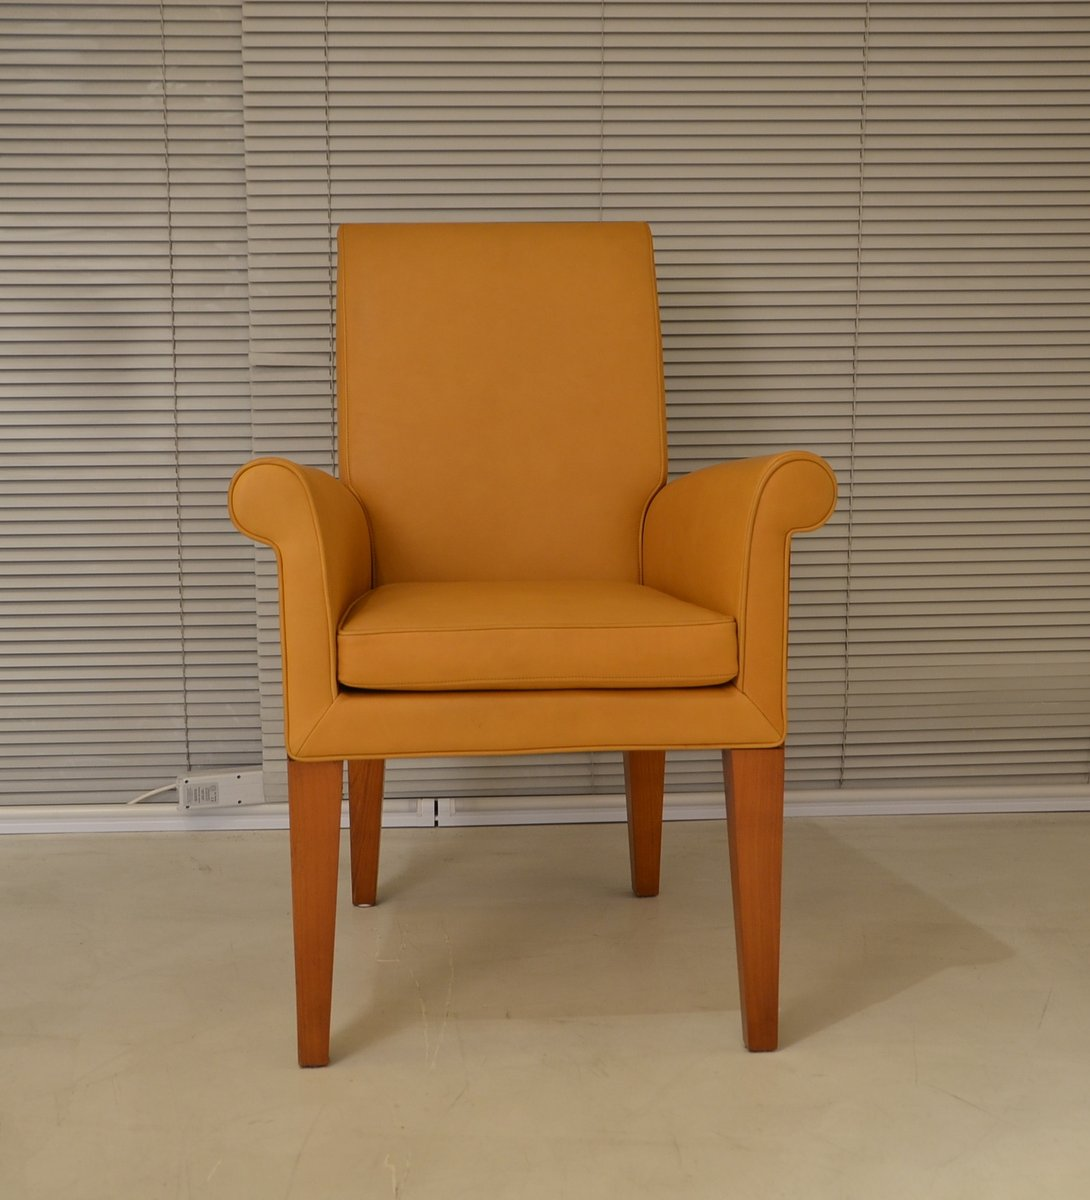 Paramount Chair By Philippe Starck For Driade 1986 For Sale At Pamono